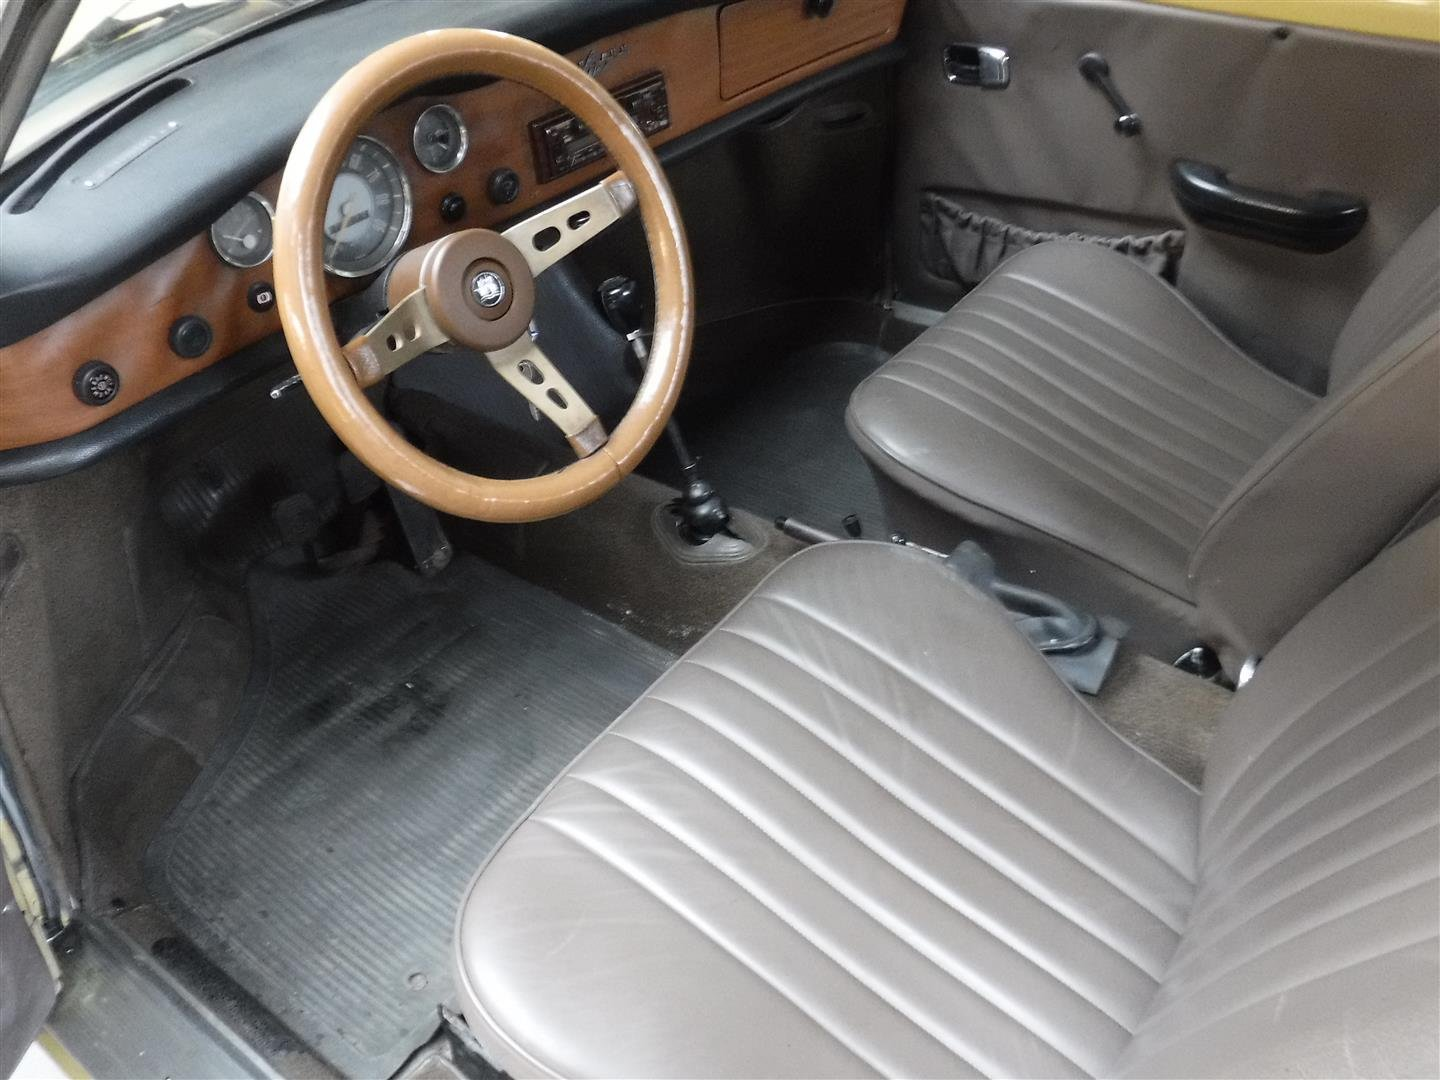 1969 VW Karmann Ghia coupé '69 For Sale (picture 3 of 6)